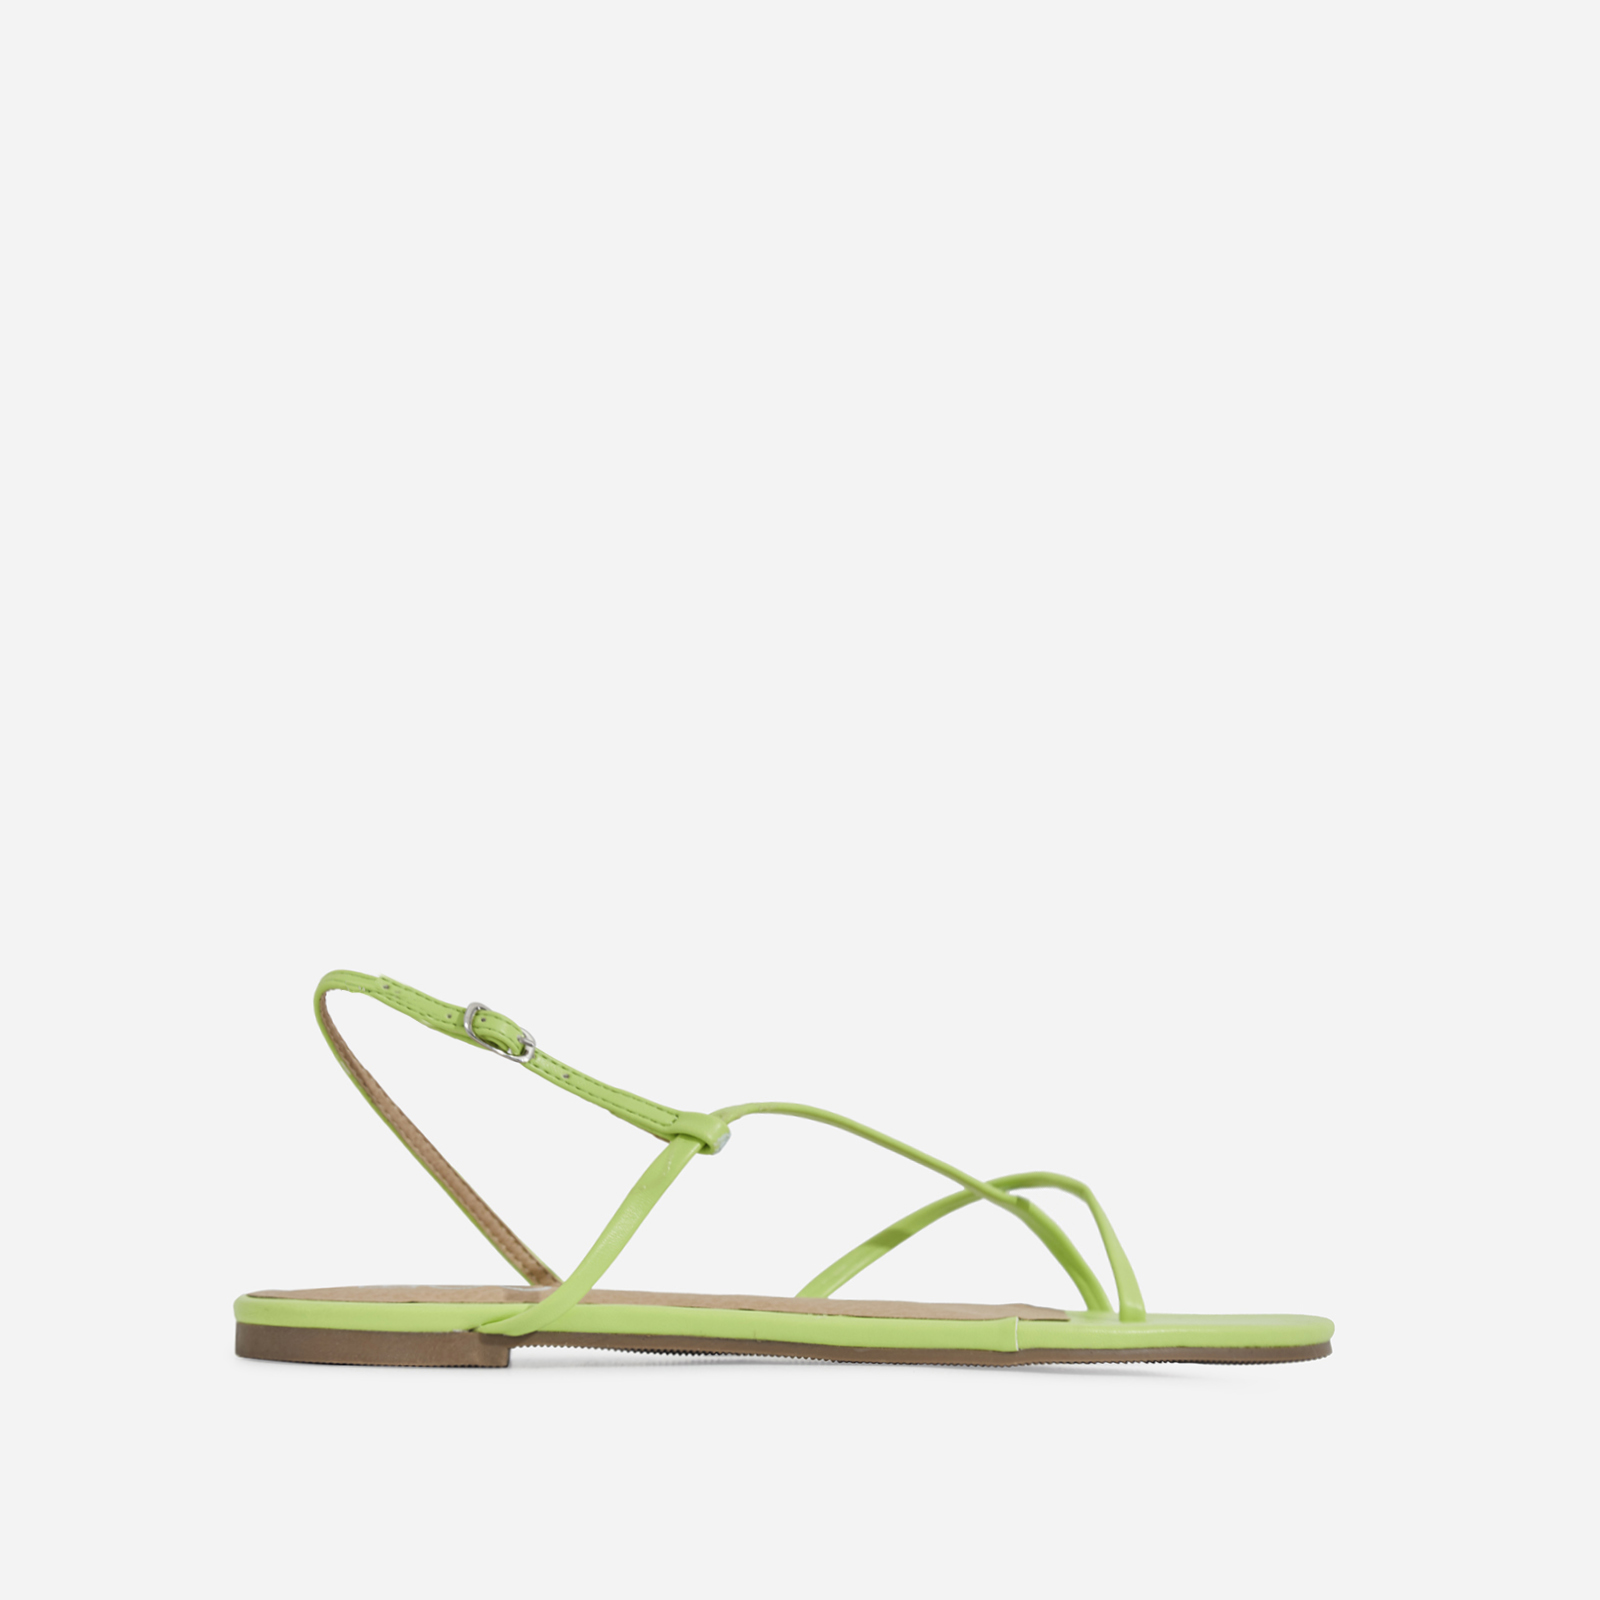 Sofie Toe Strap Sandal In Lime Green Faux Leather